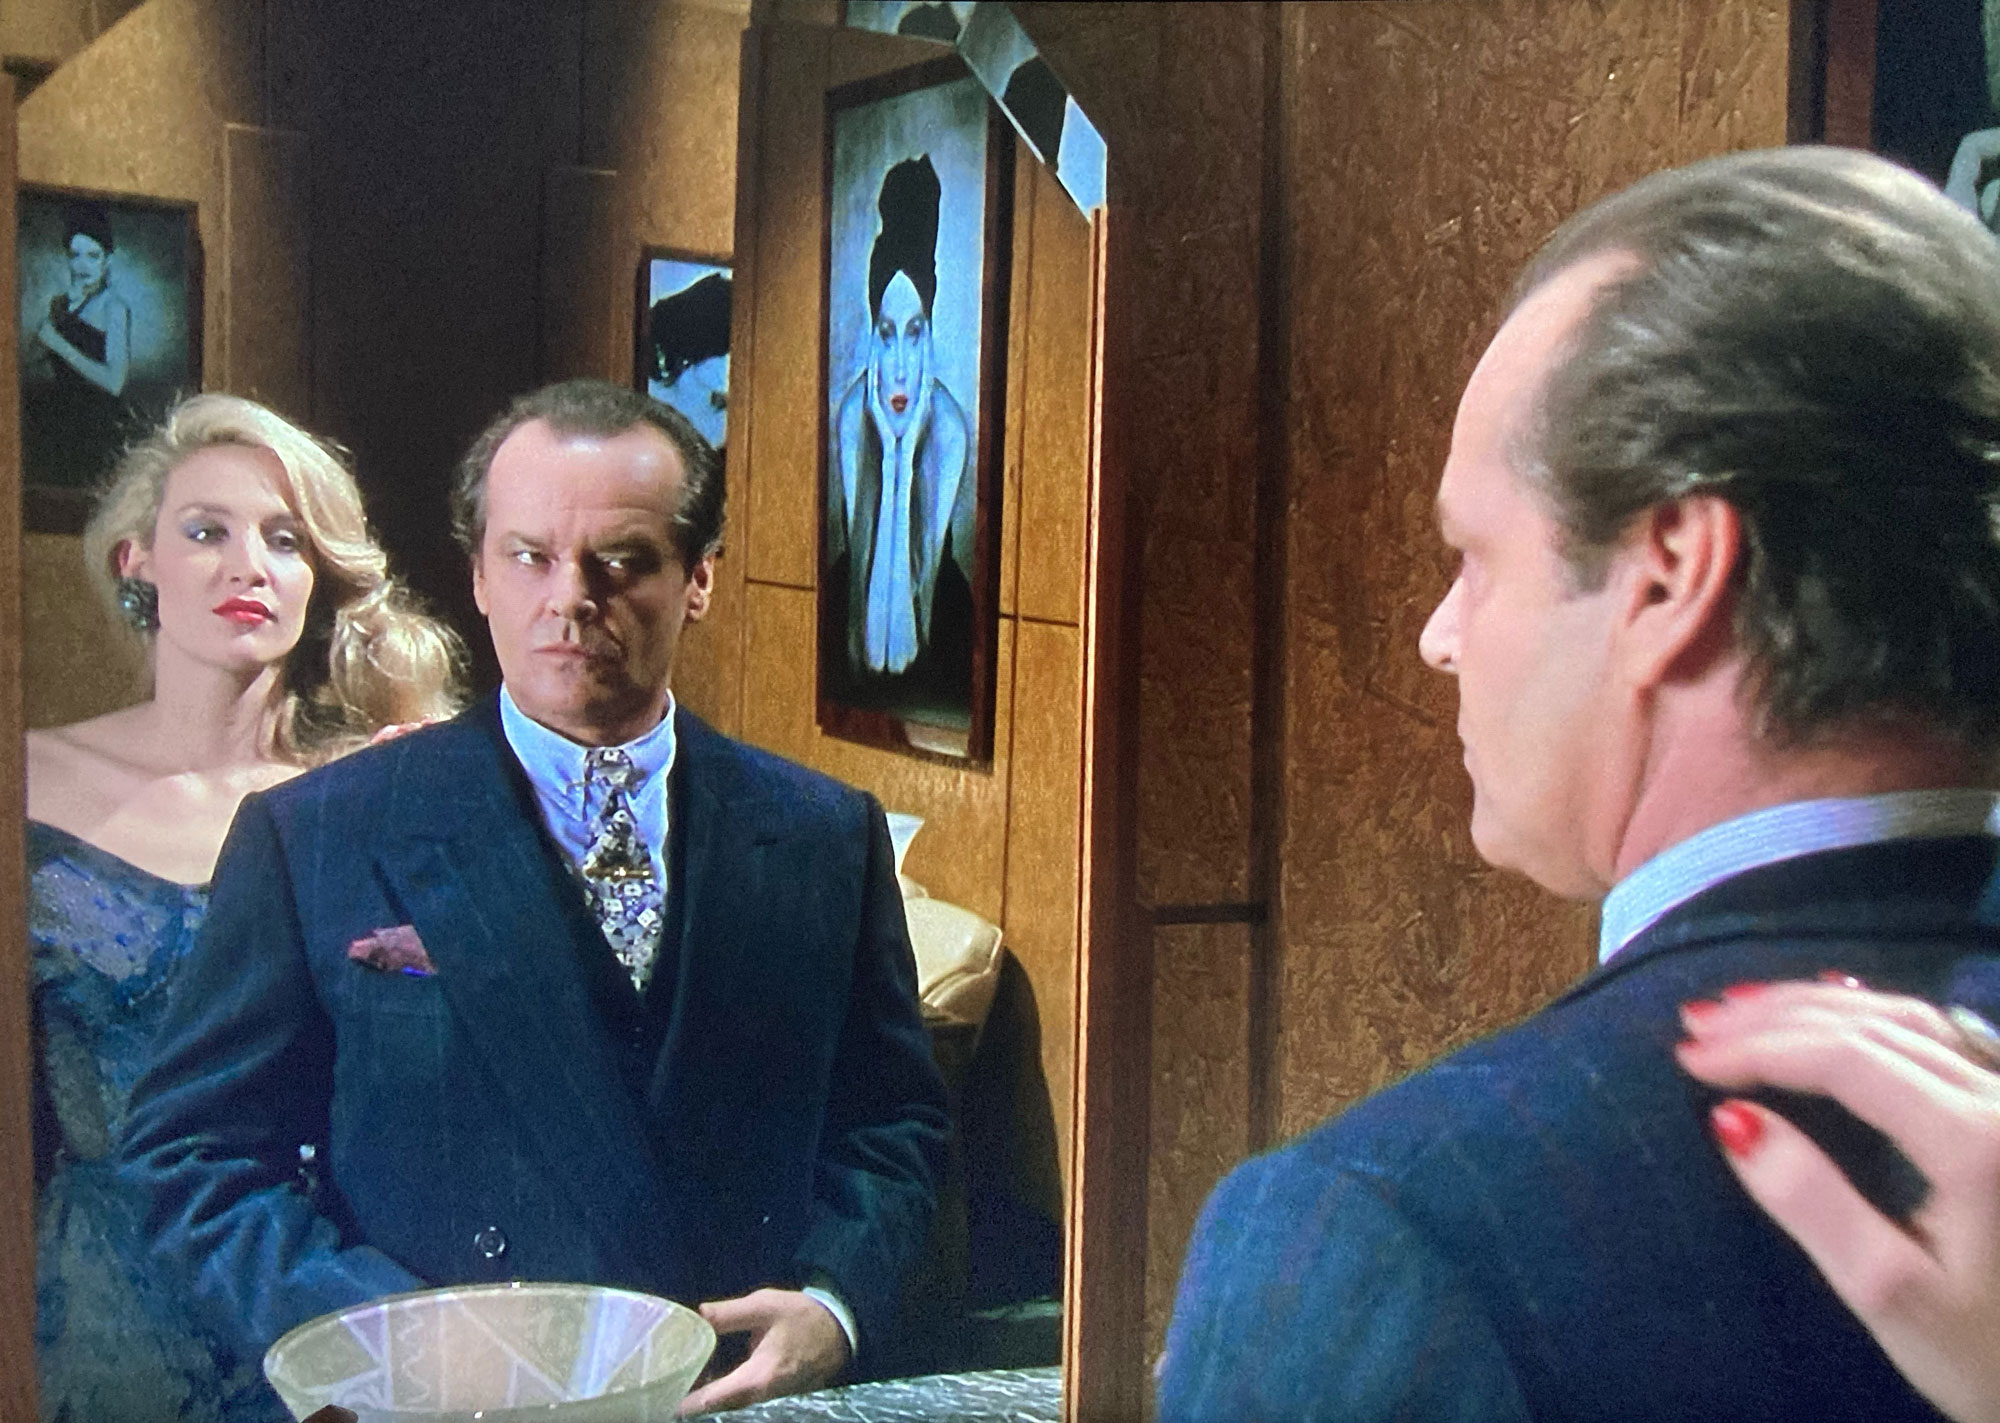 Terry Haste suit photo contains Jack Nicholson looking at Jerry Hall in the mirror